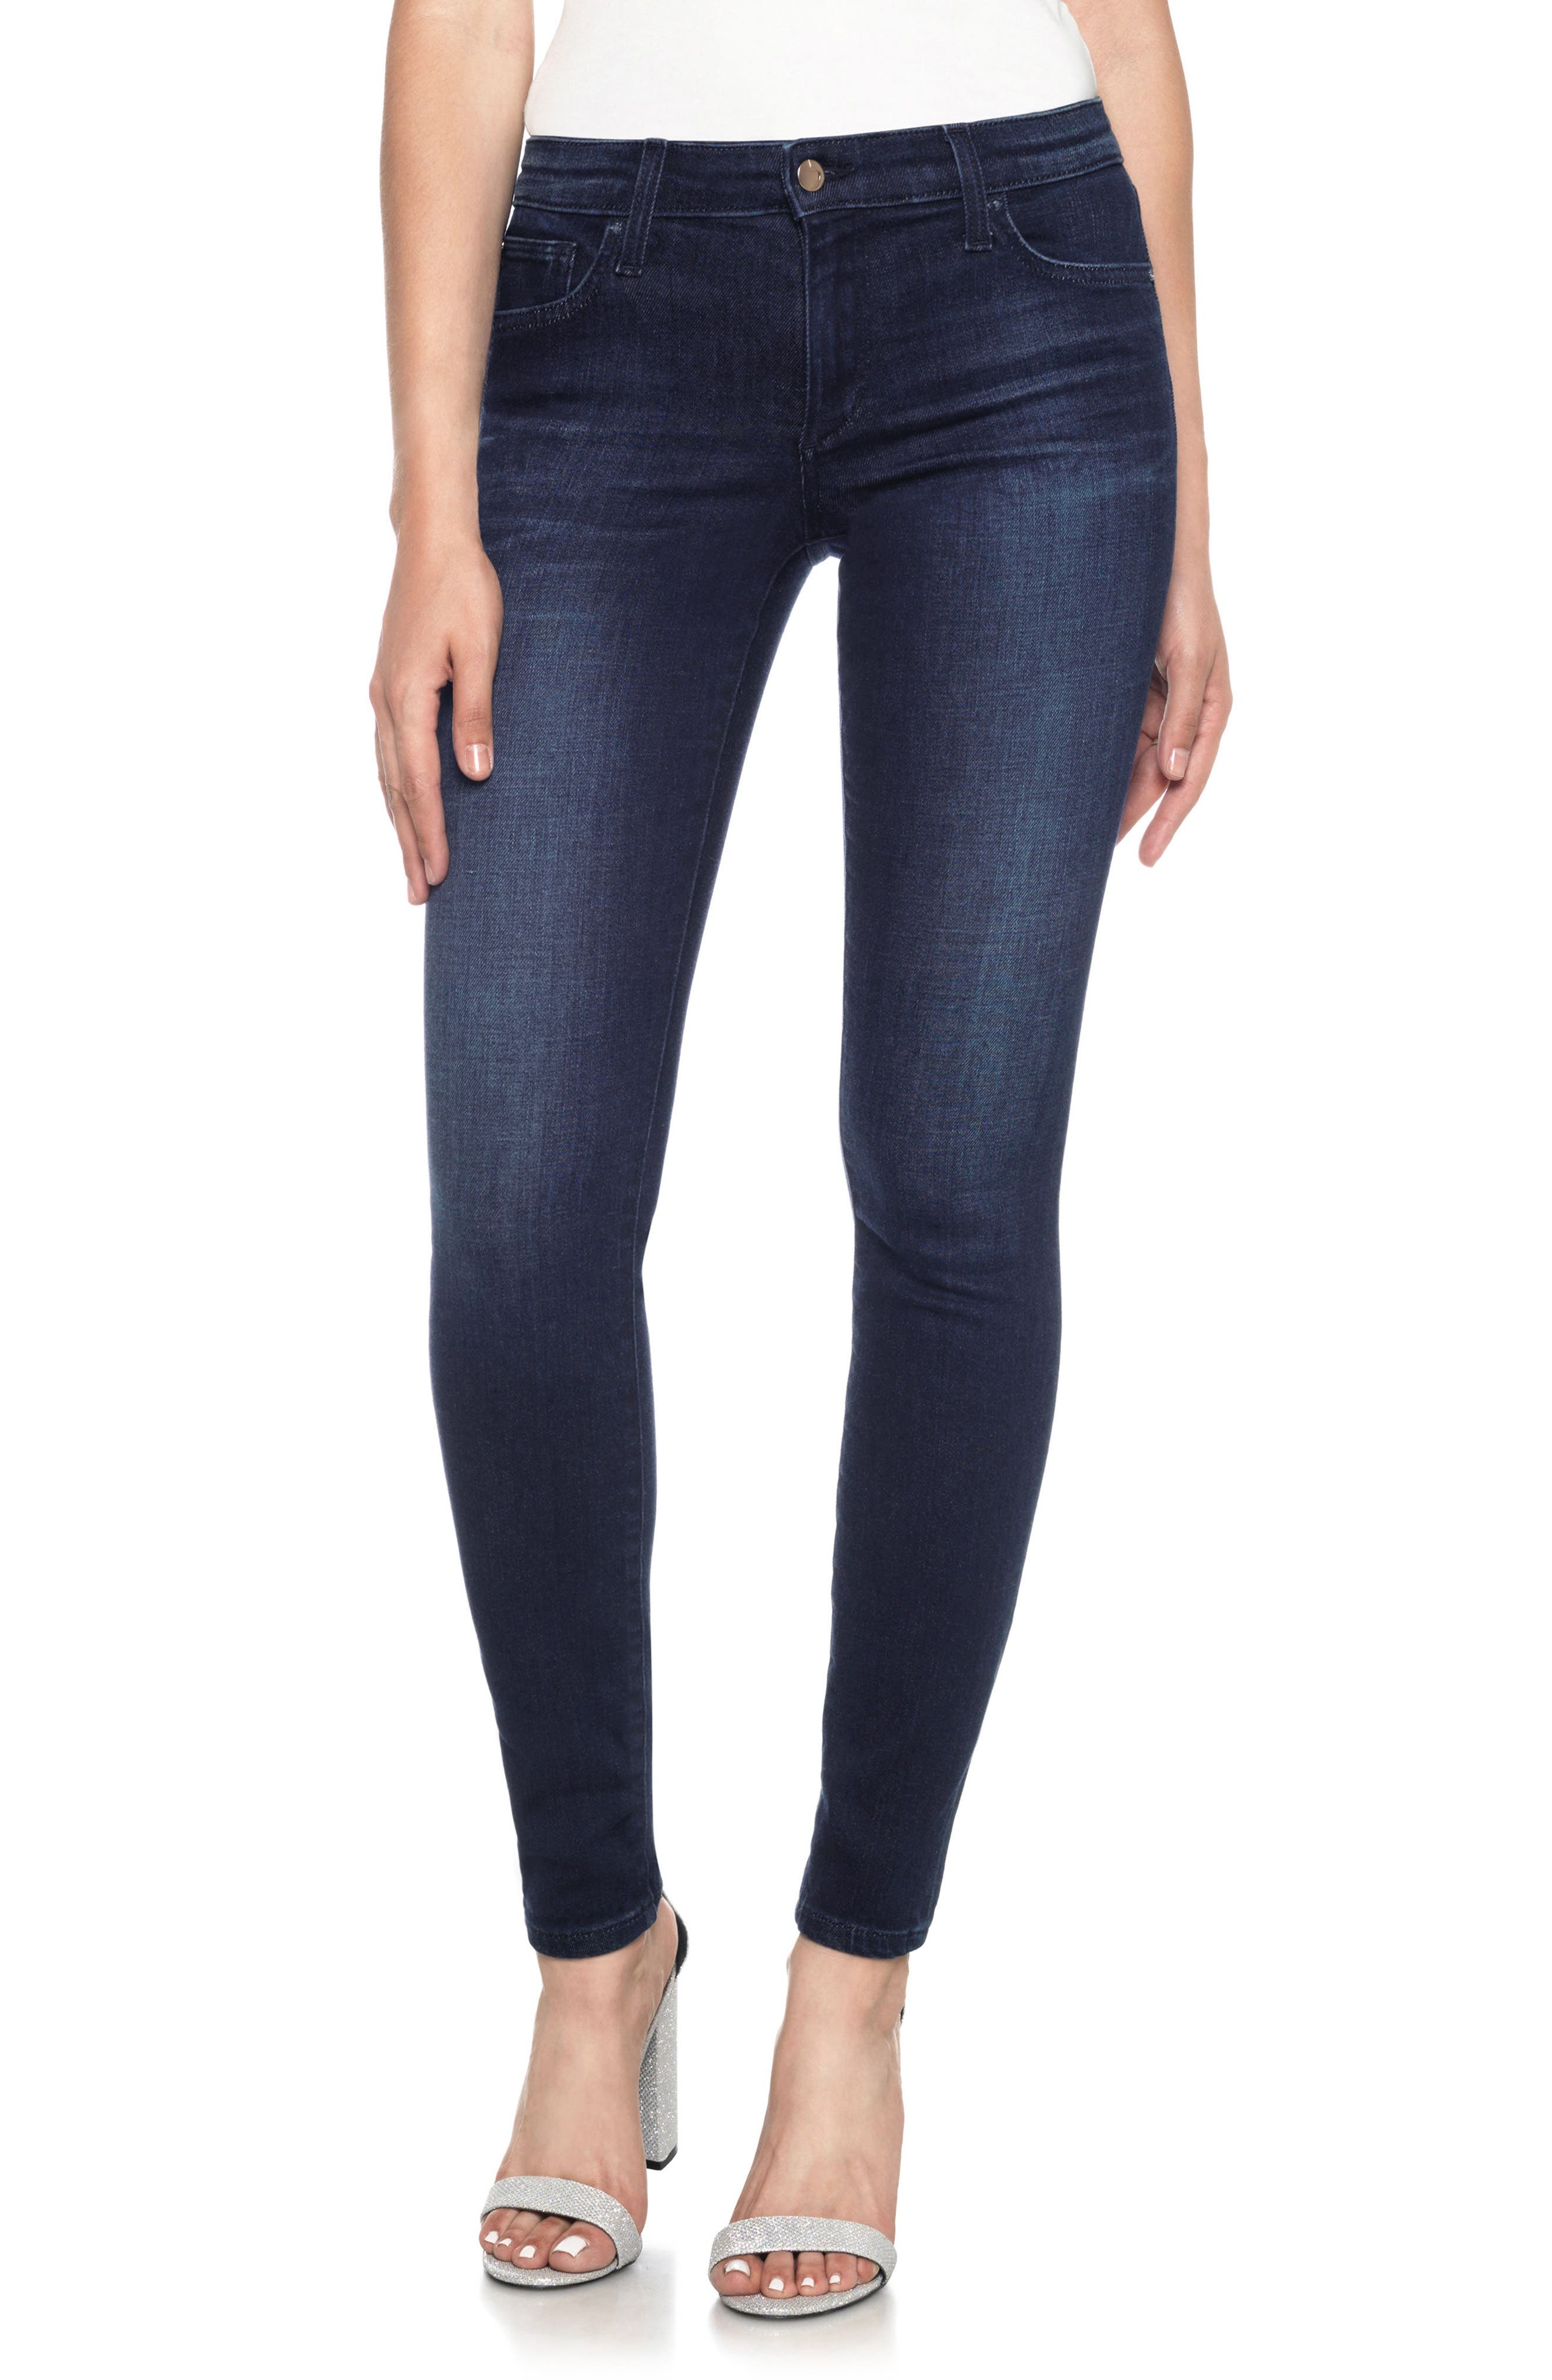 Honey Curvy Skinny Jeans,                         Main,                         color,